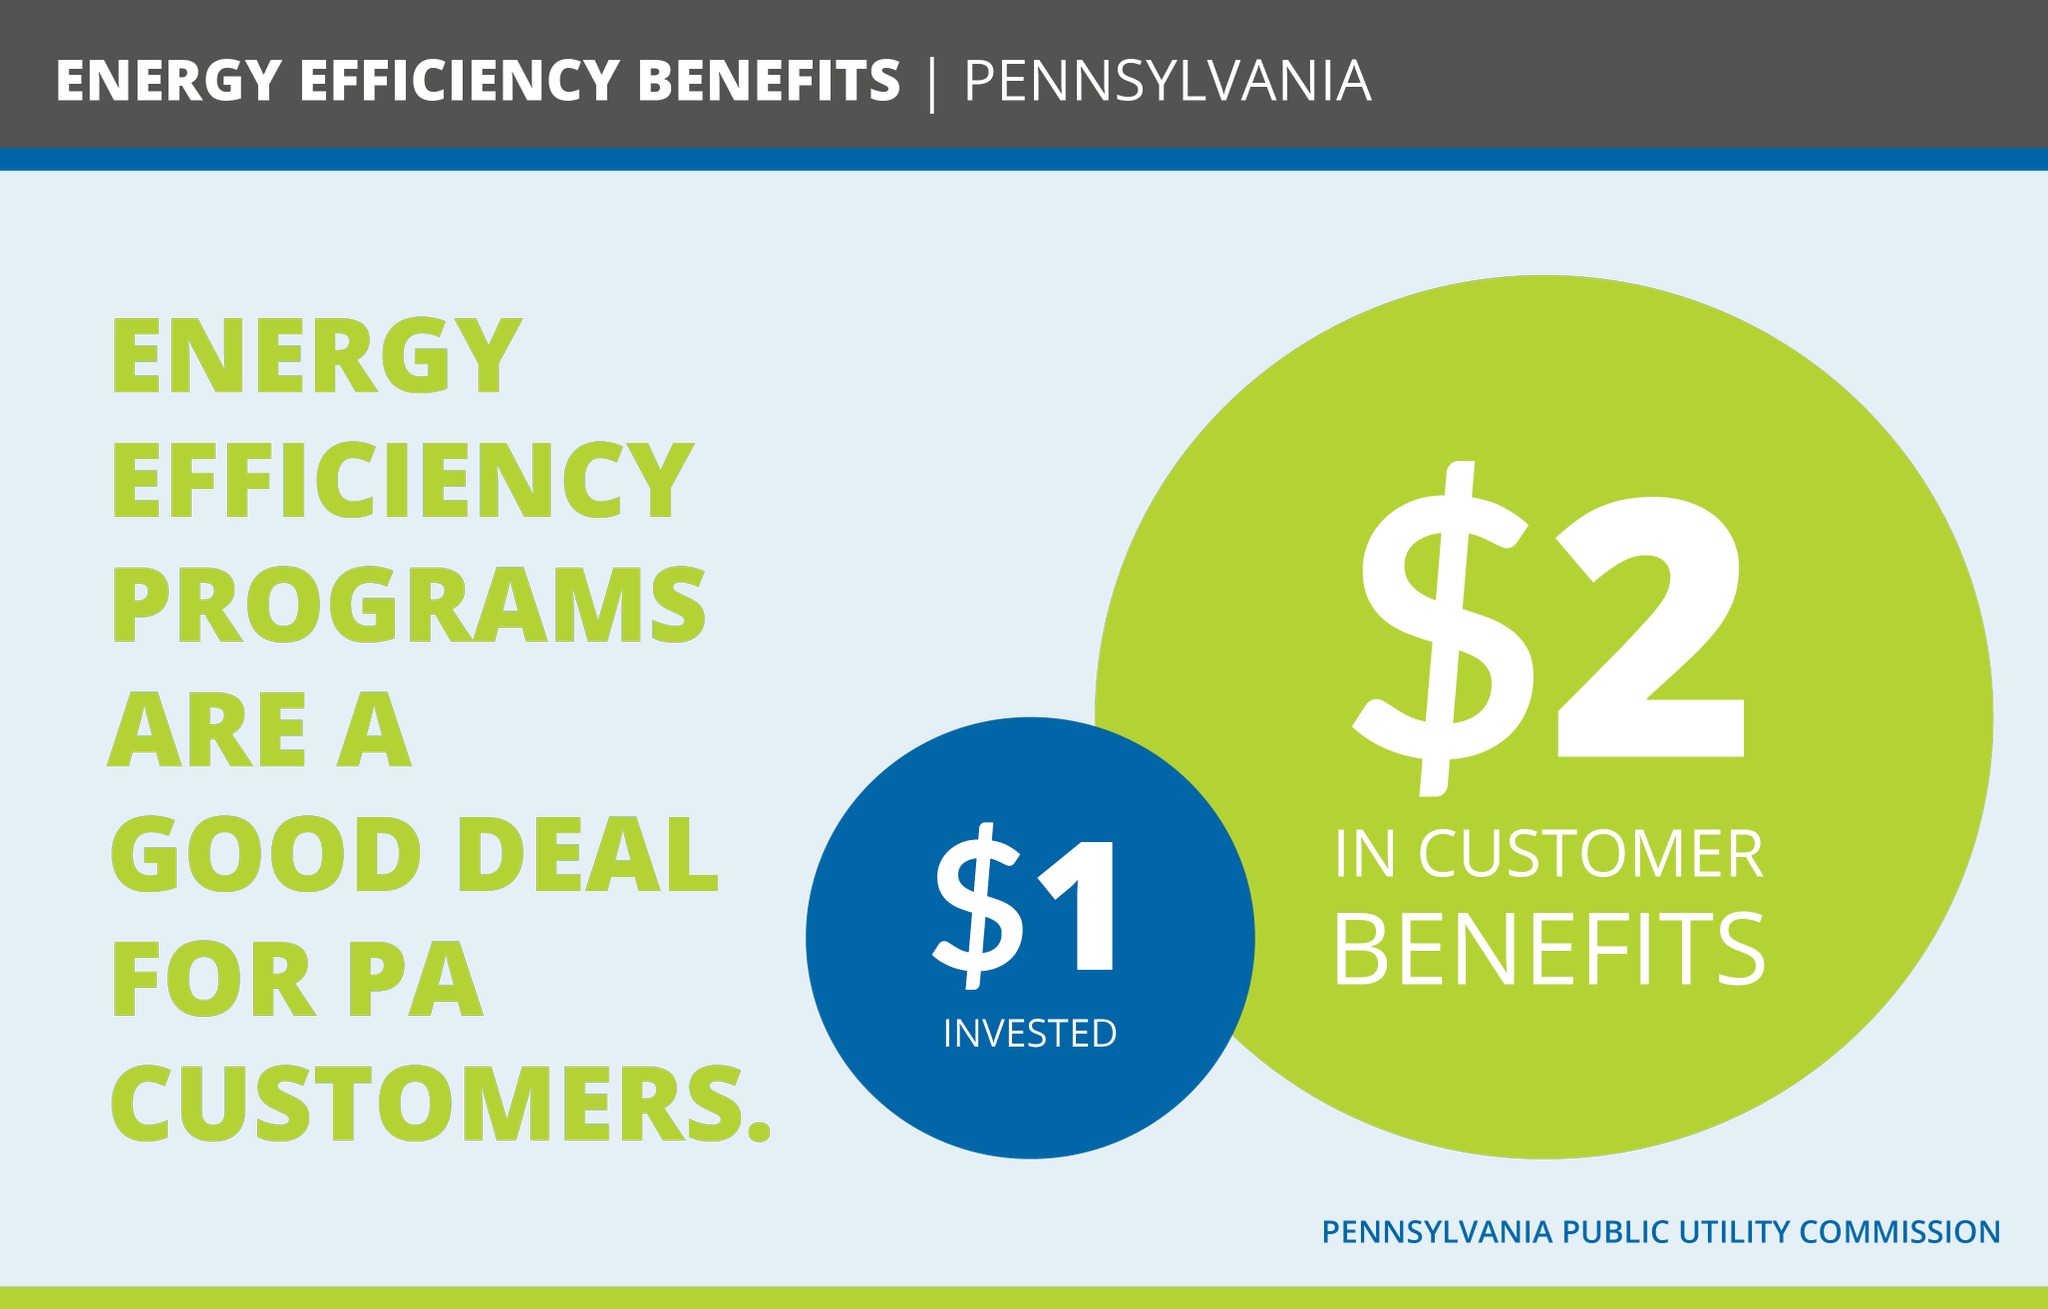 Pennsylvania's #EnergyEfficiency program – #Act 129 – saves customers money & supports 62K+ good, family-wage jobs that can't be outsourced. https://t.co/hoGnkmSp0w